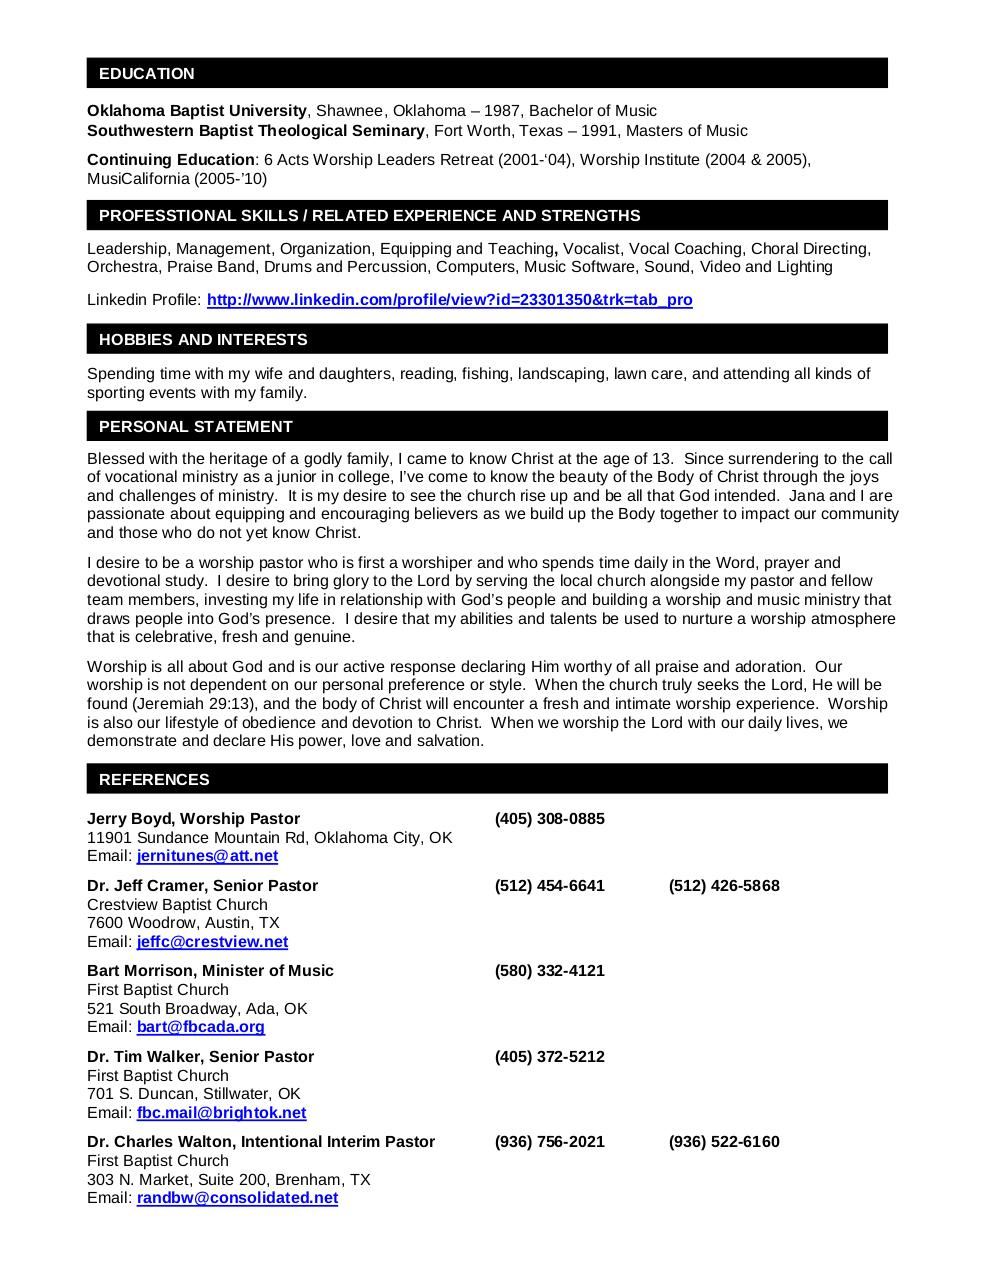 Pastoral Resume Template Pastor Resume Samples Resume Samples – Sample Resume for Pastors